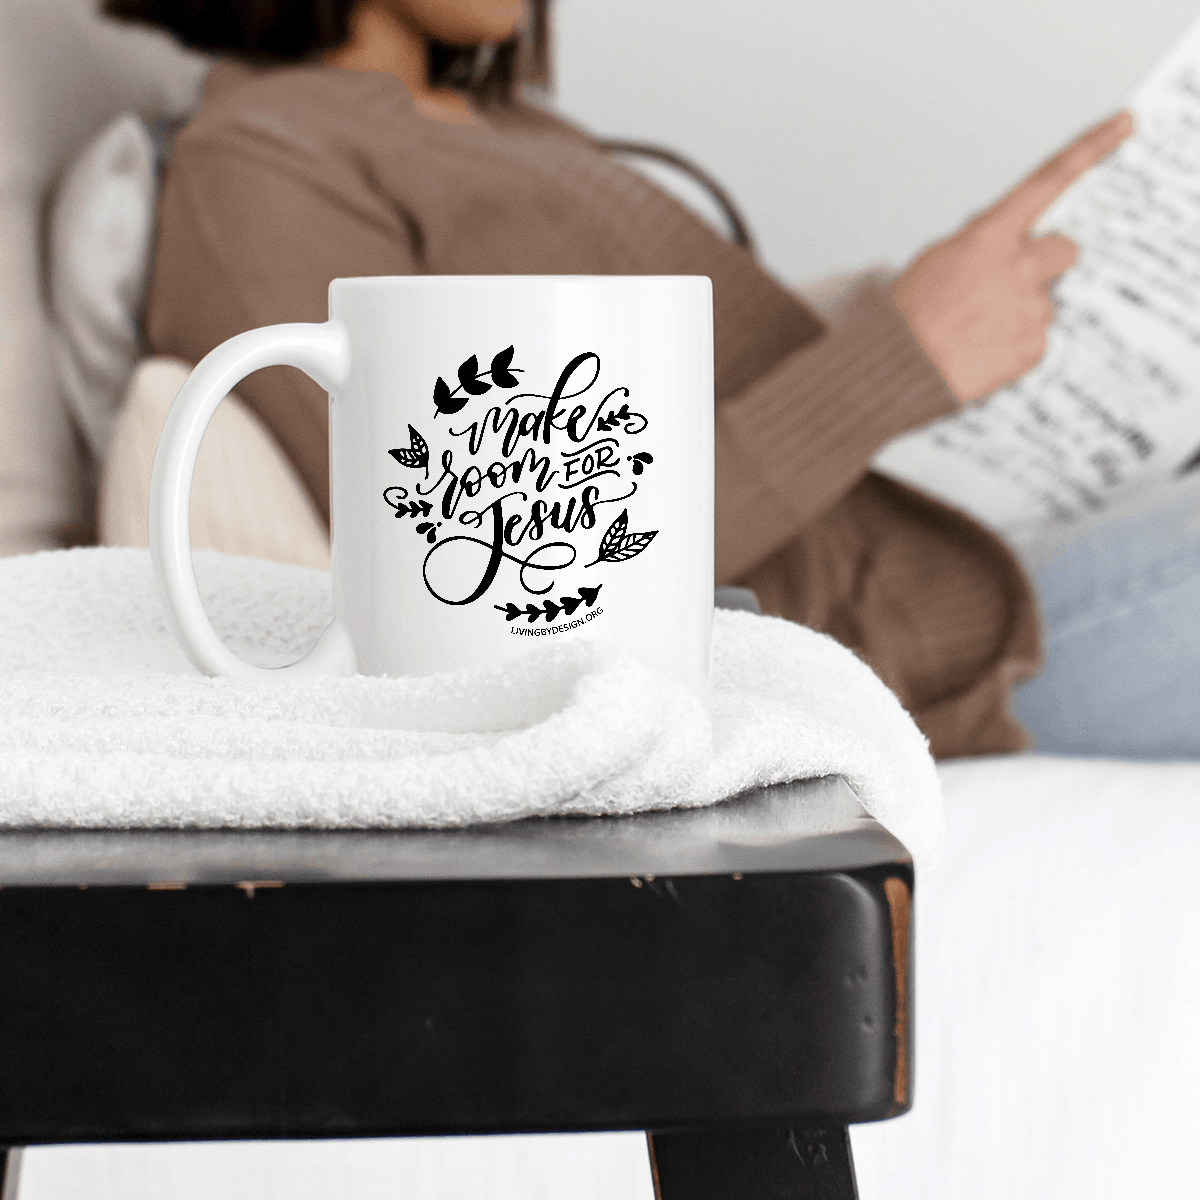 Mug on a Mission Fundraiser for Living by Design Ministries | Make Room for Jesus Mug